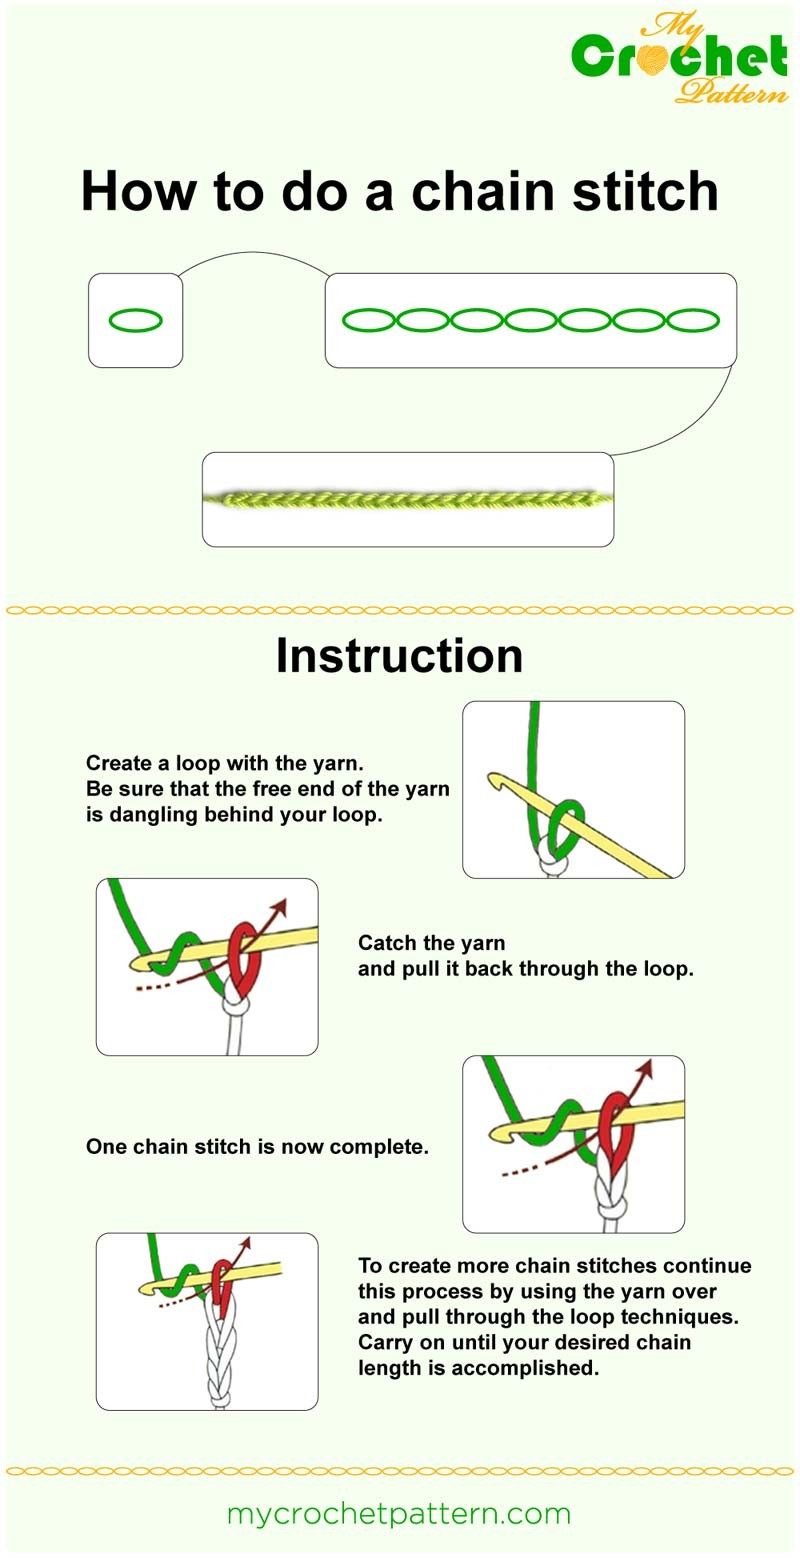 how to do a chain stitch - infographic